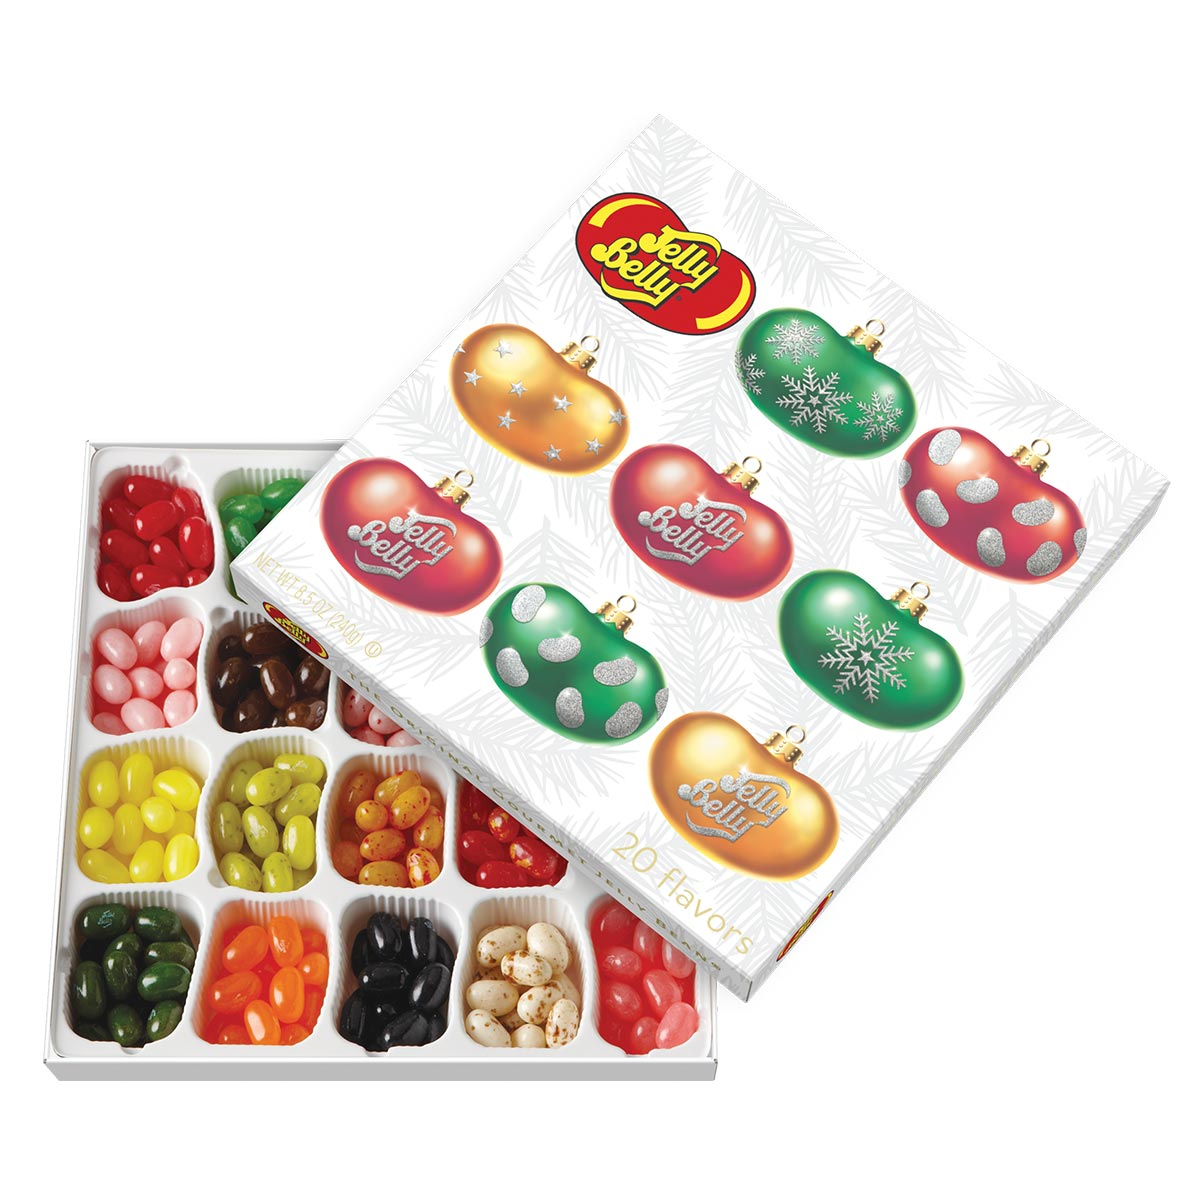 Christmas Flavors.Jelly Belly 20 Flavor Christmas Gift Box